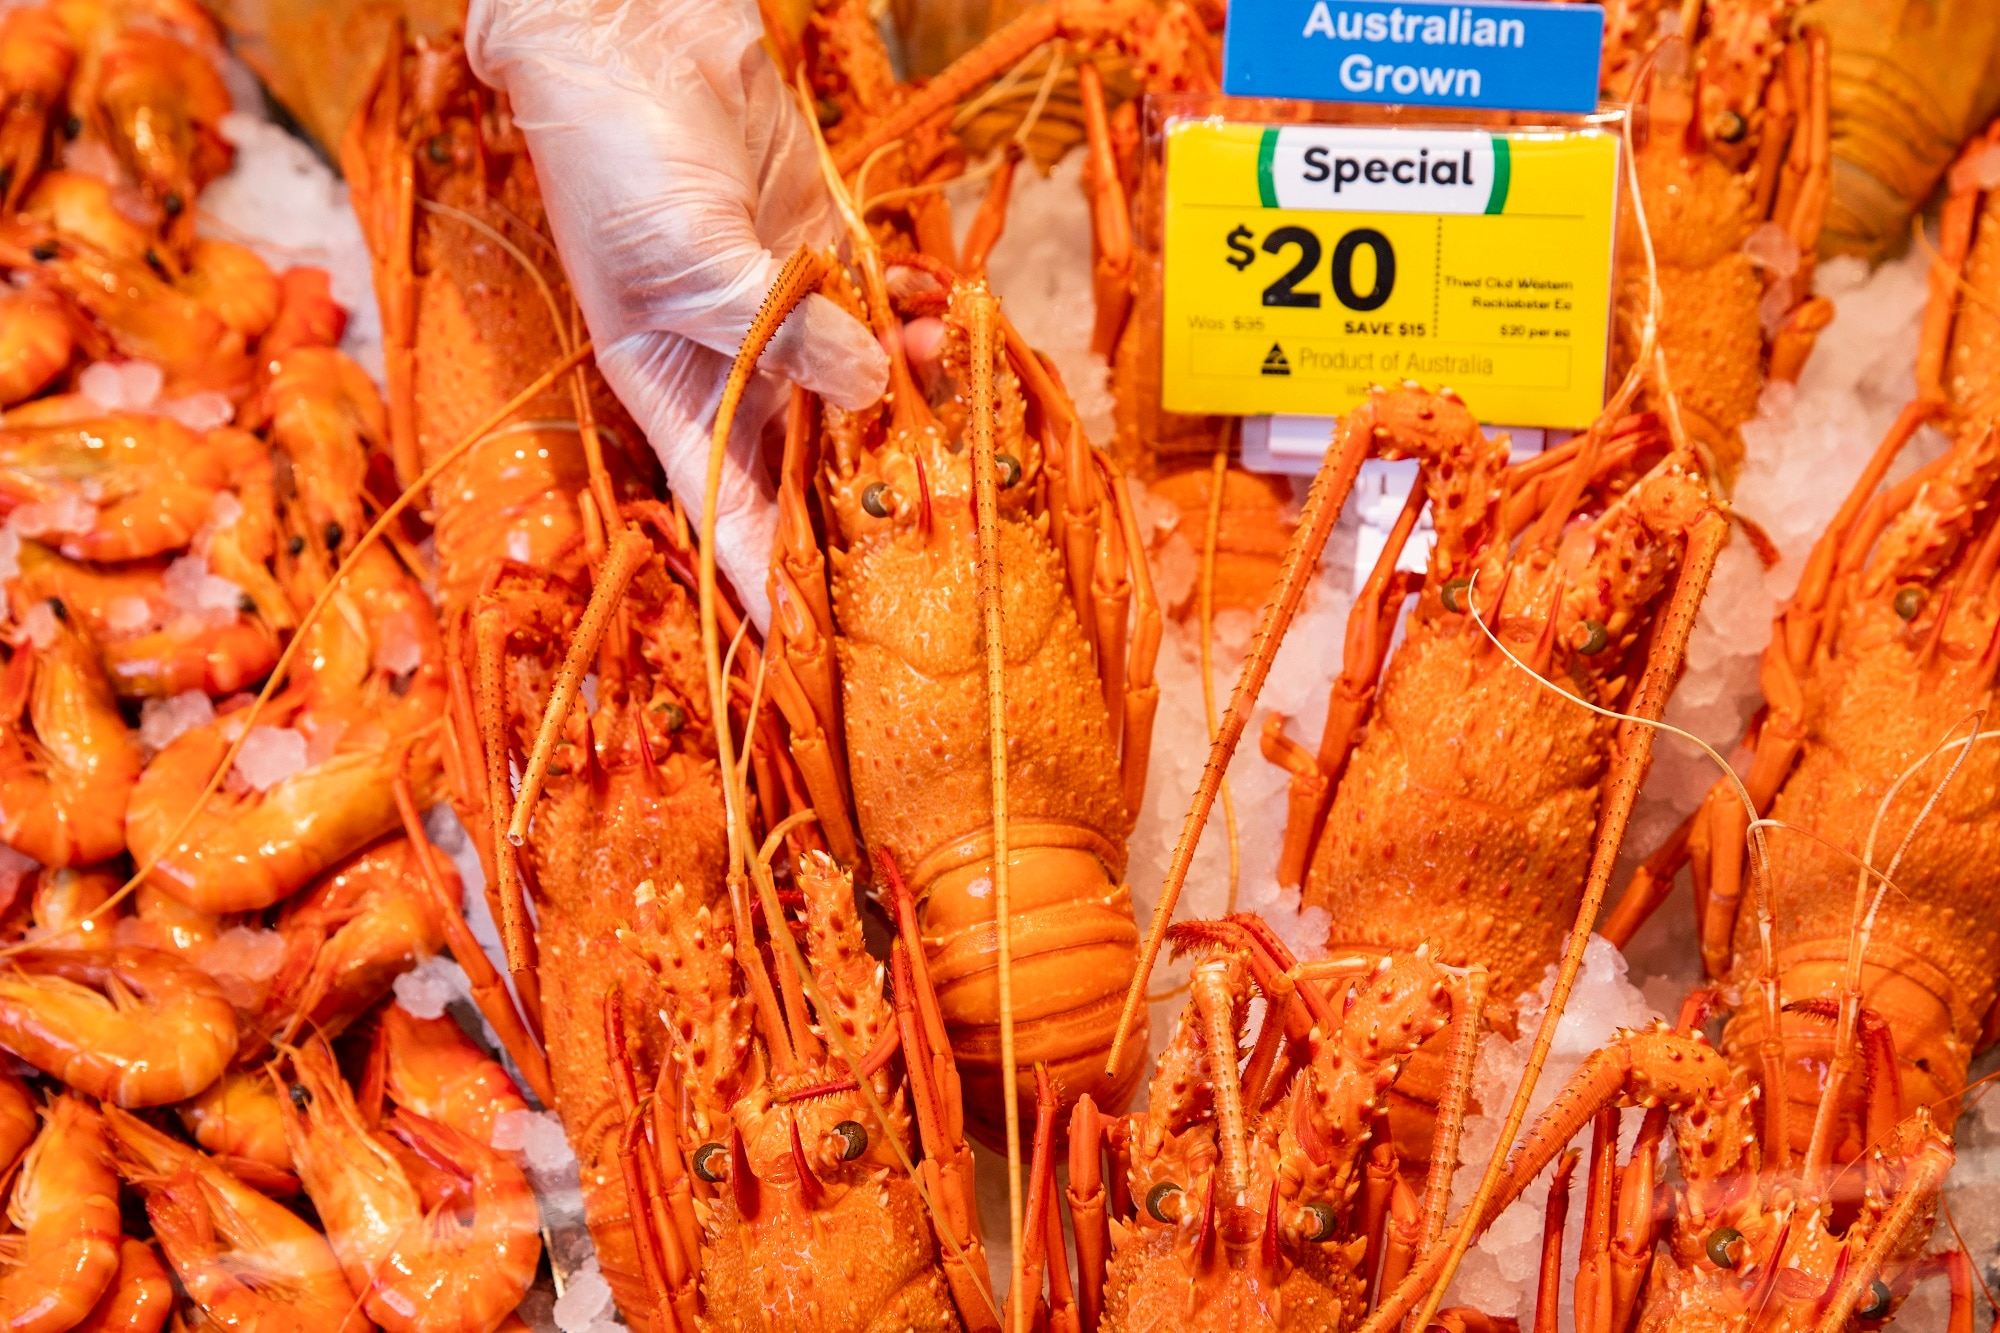 Woolworths. Western Australia Rock Lobsters available for Christmas. 9th December 2020. Photograph Dallas Kilponen/Woolworths